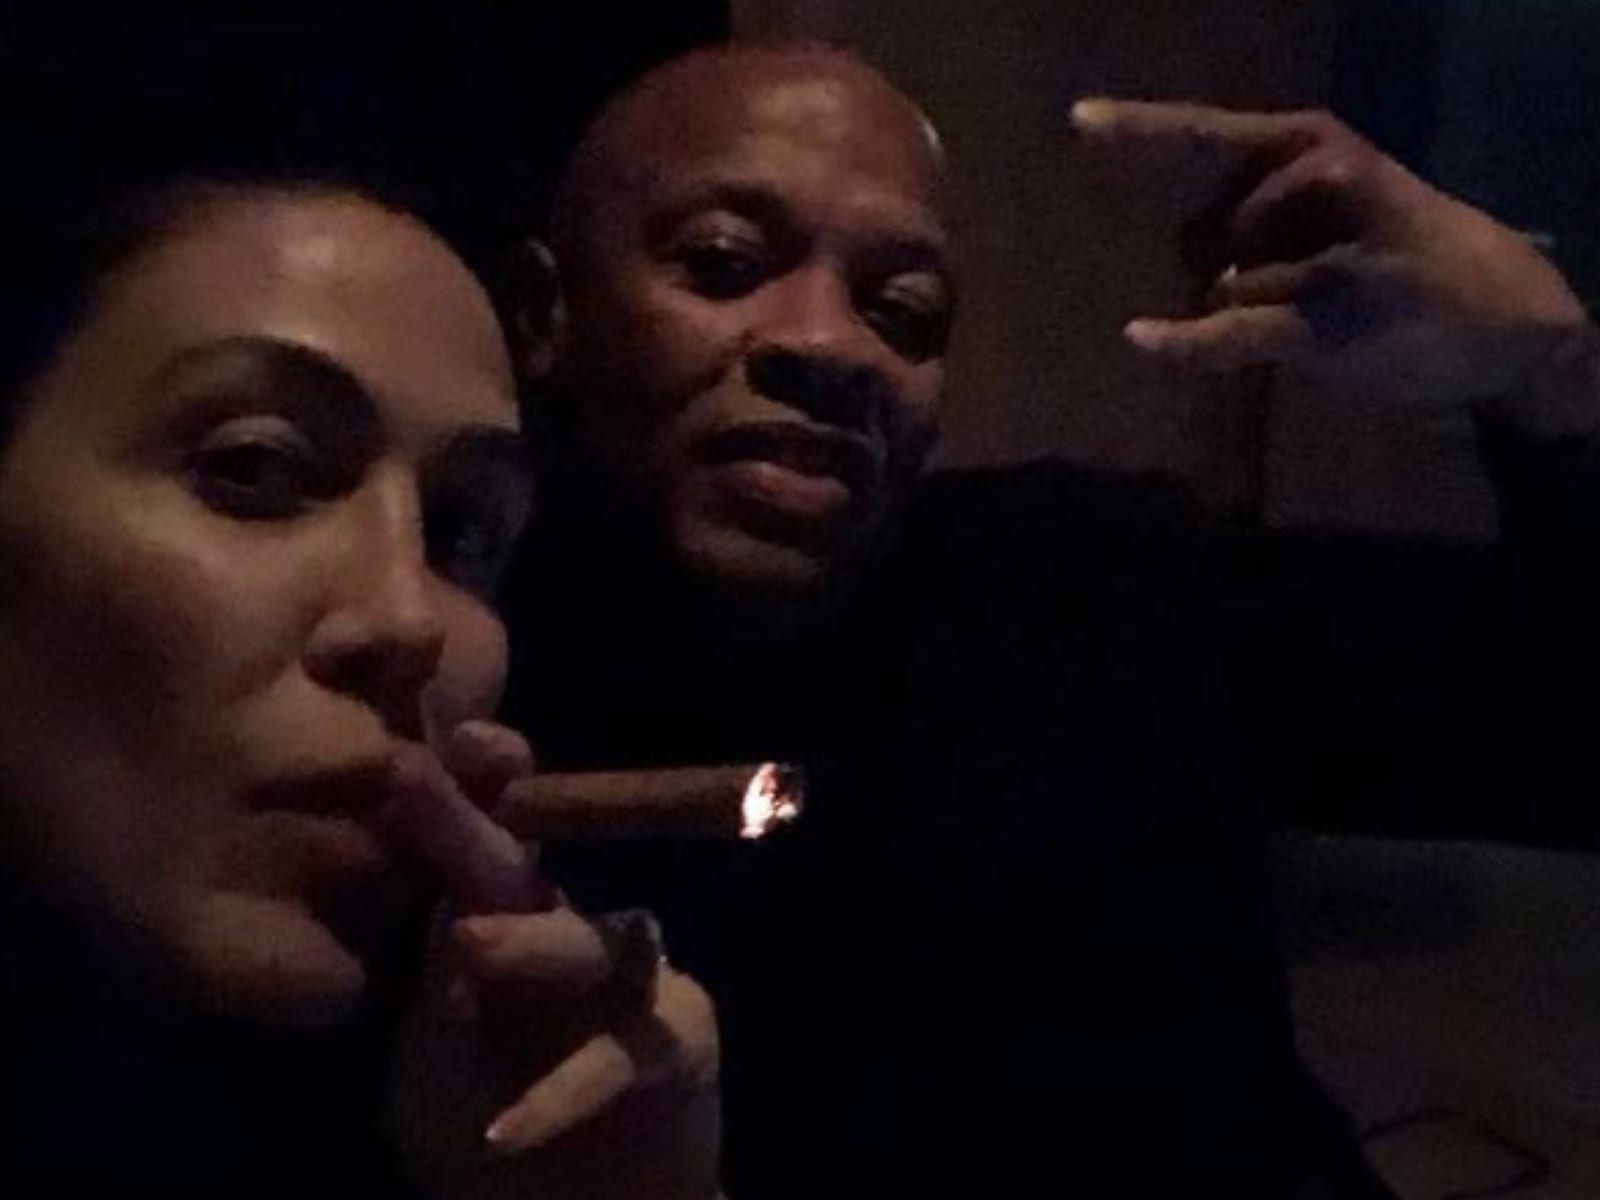 Dr. Dre Agrees To Pay $2 Million To Nicole Young While Recovering From Hospitalization